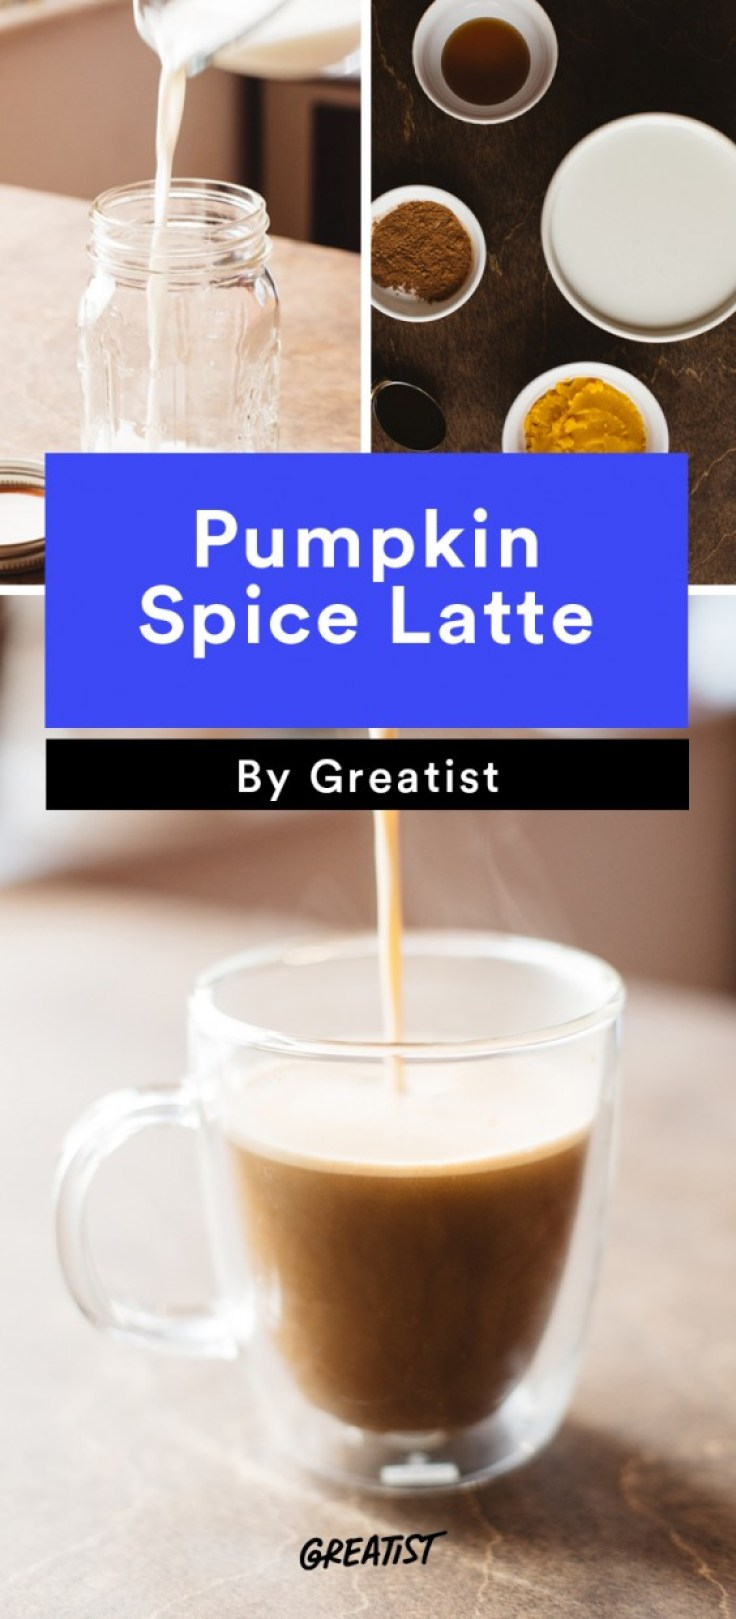 At Home Starbucks Recipes: Pumpkin Spice Latte